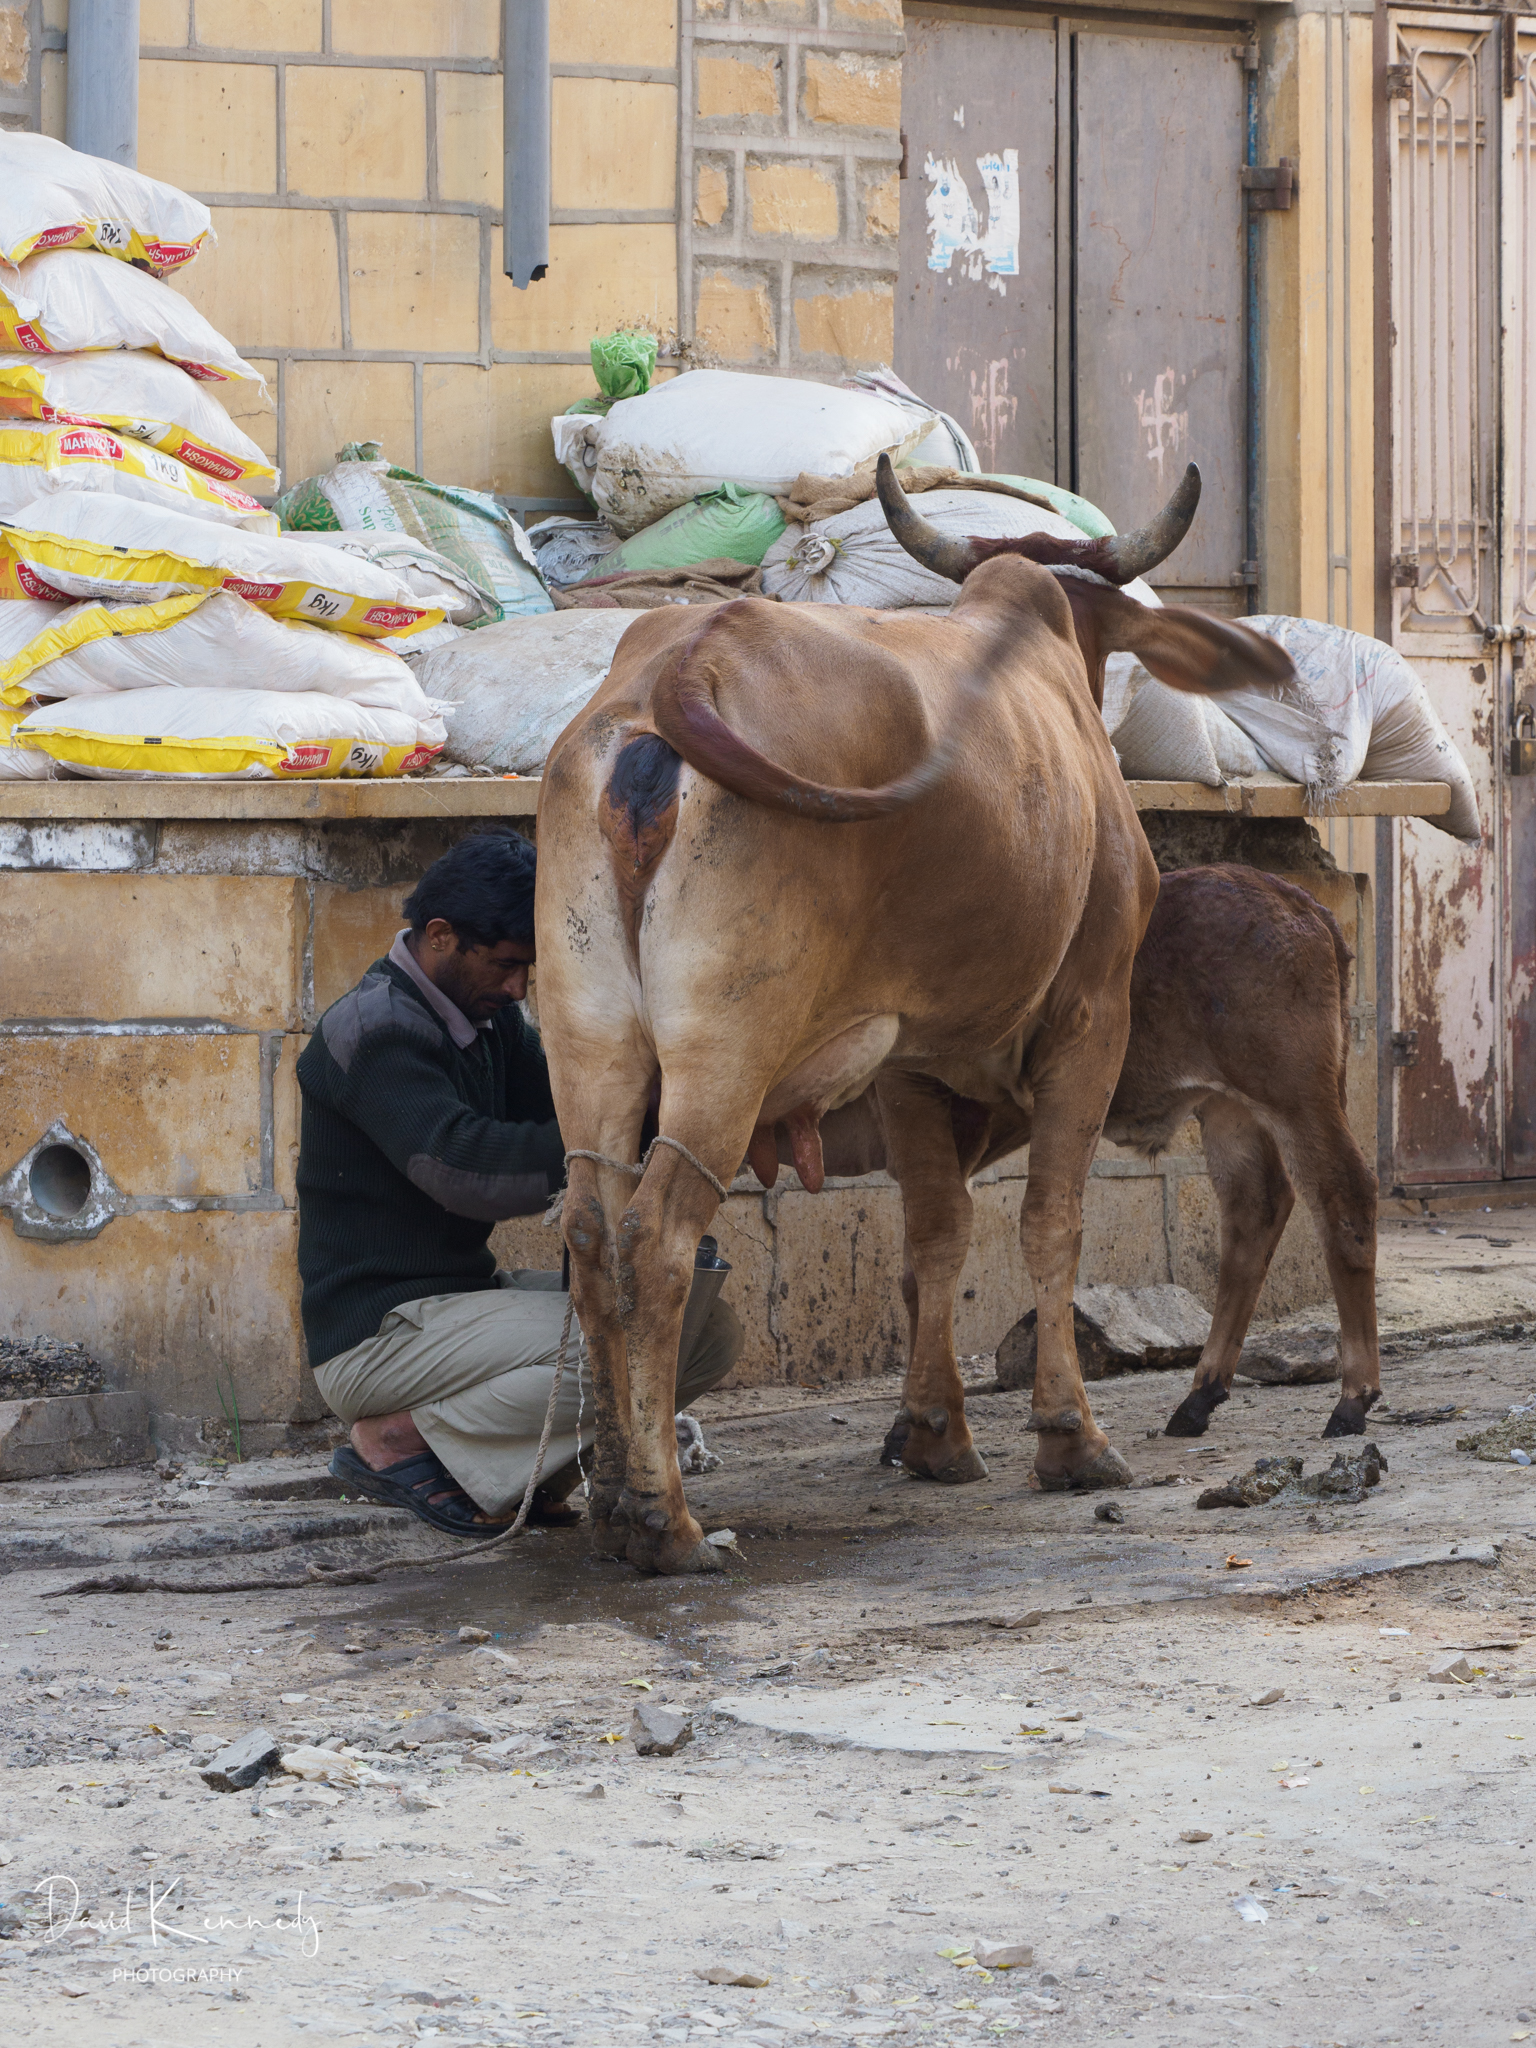 Cow being milked in the street in India